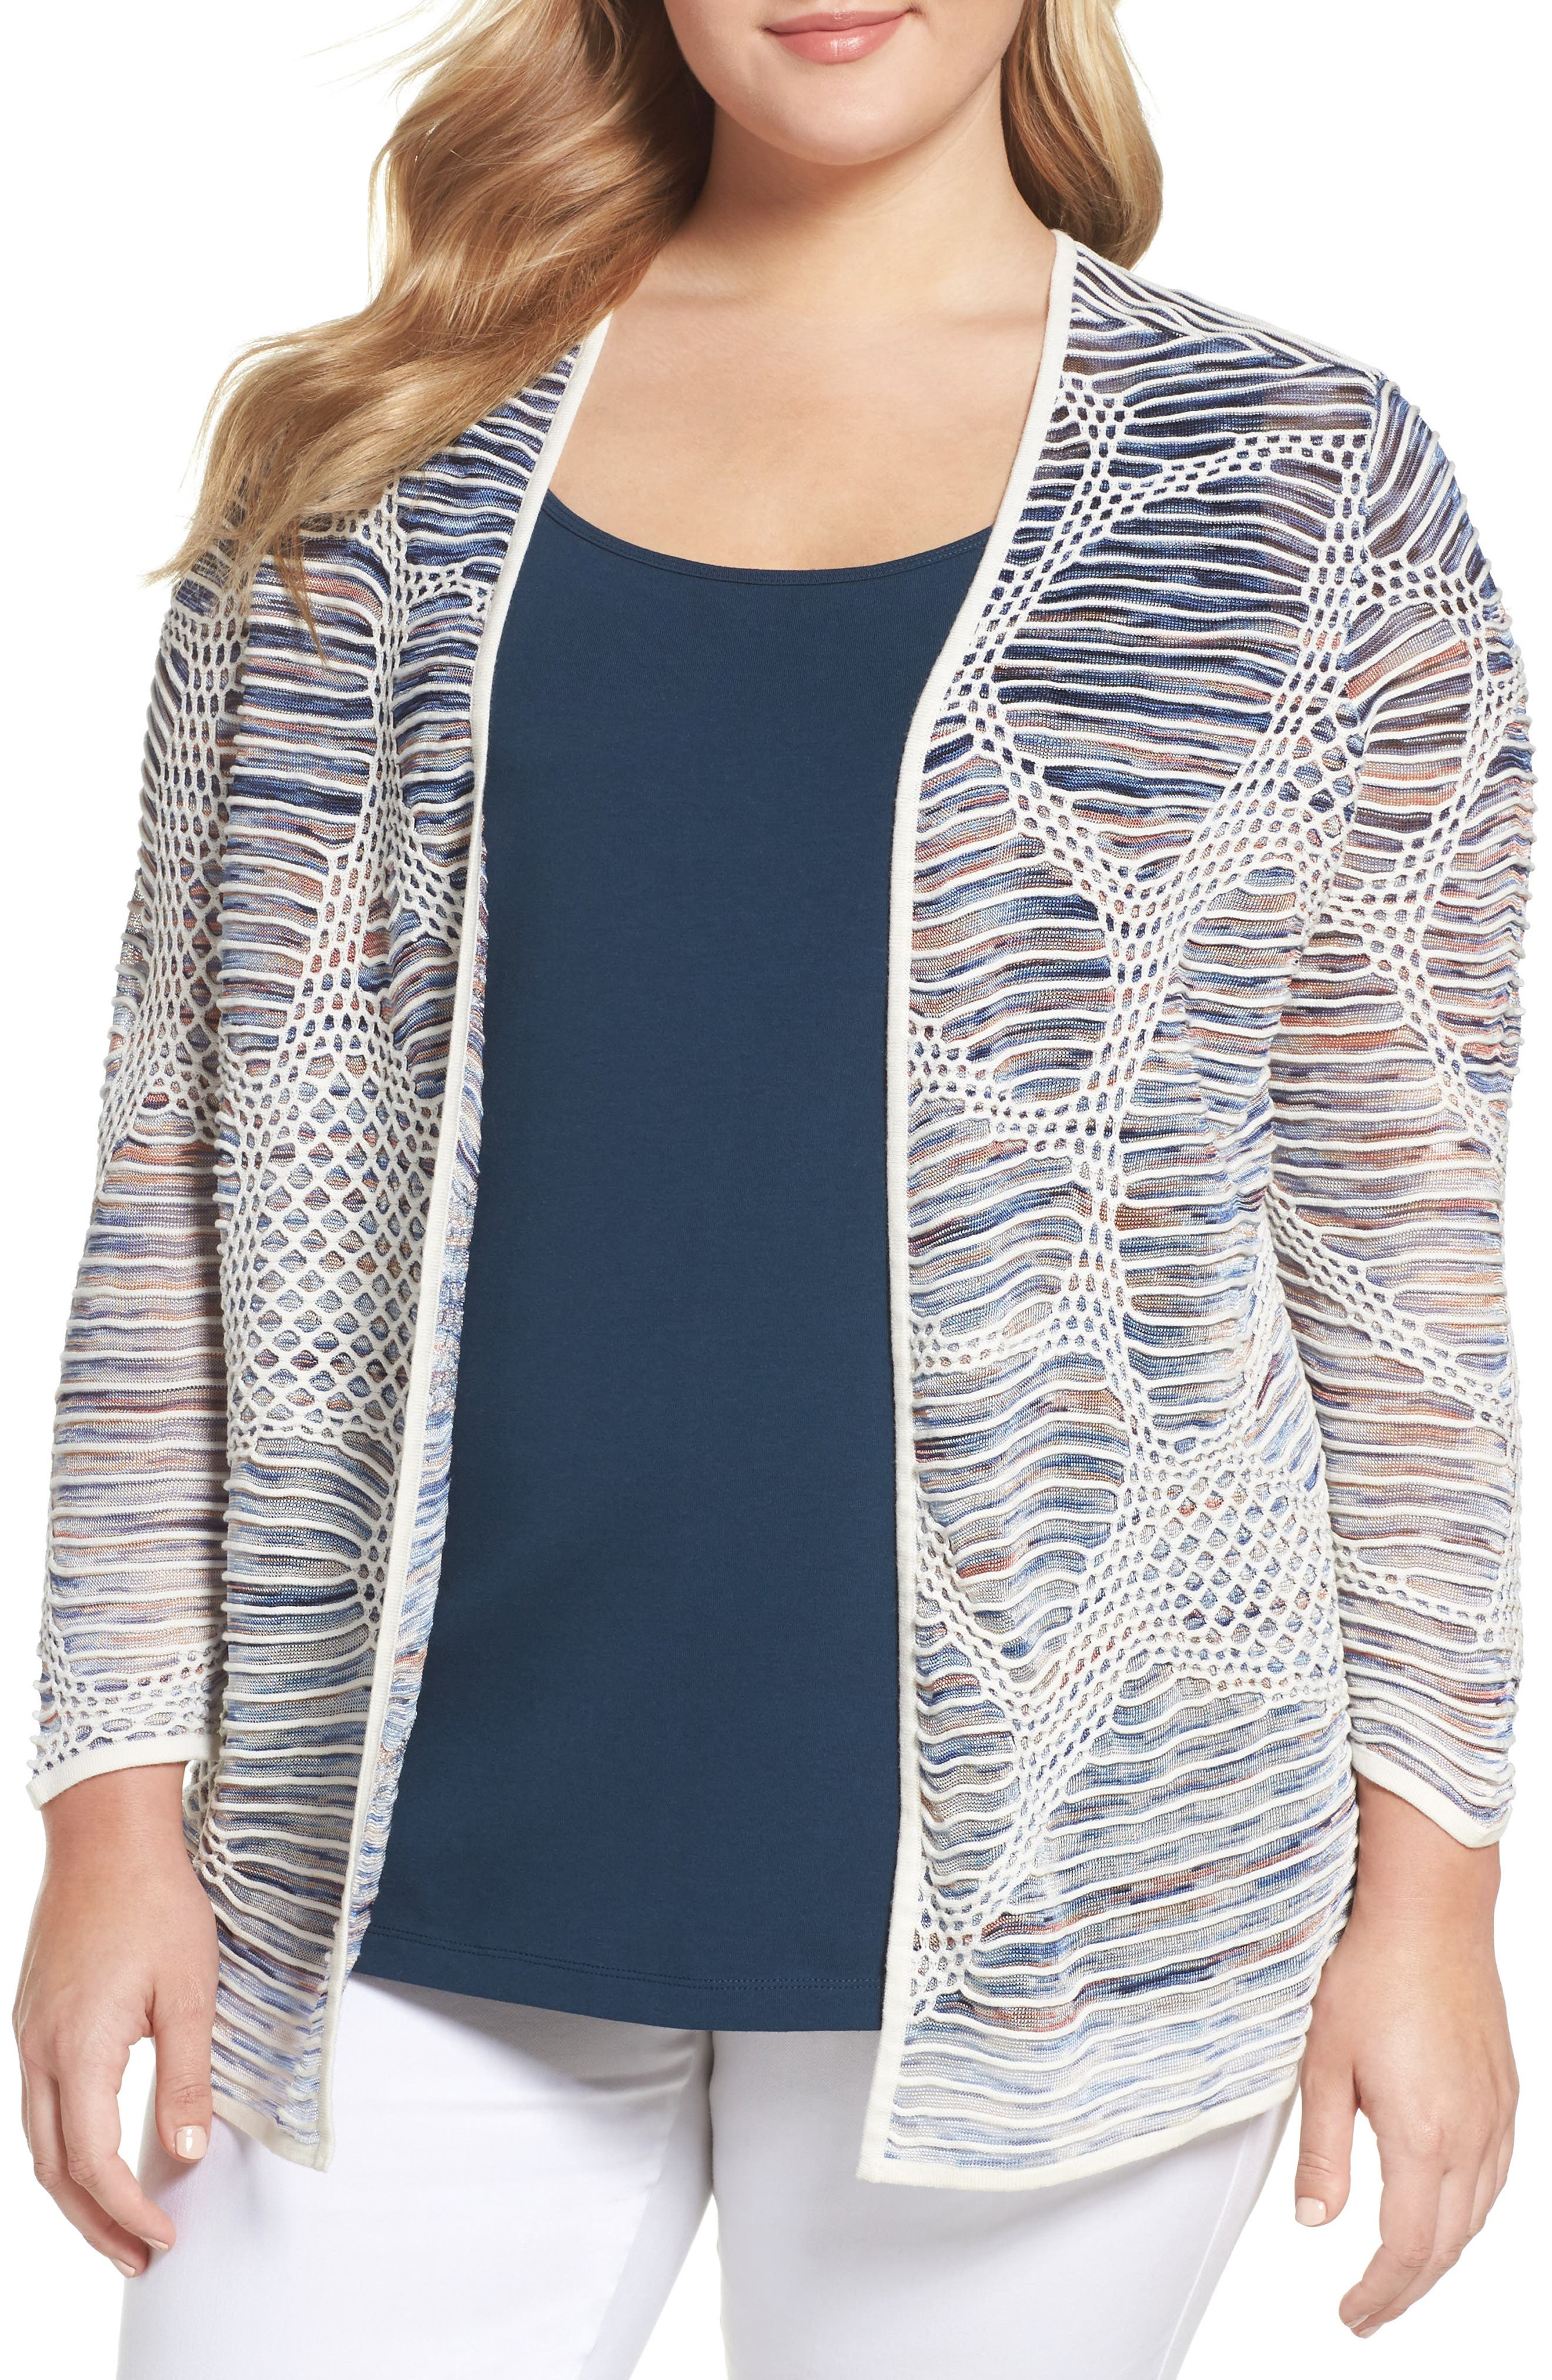 Wildflower Open Front Cardigan,                             Main thumbnail 1, color,                             Multi